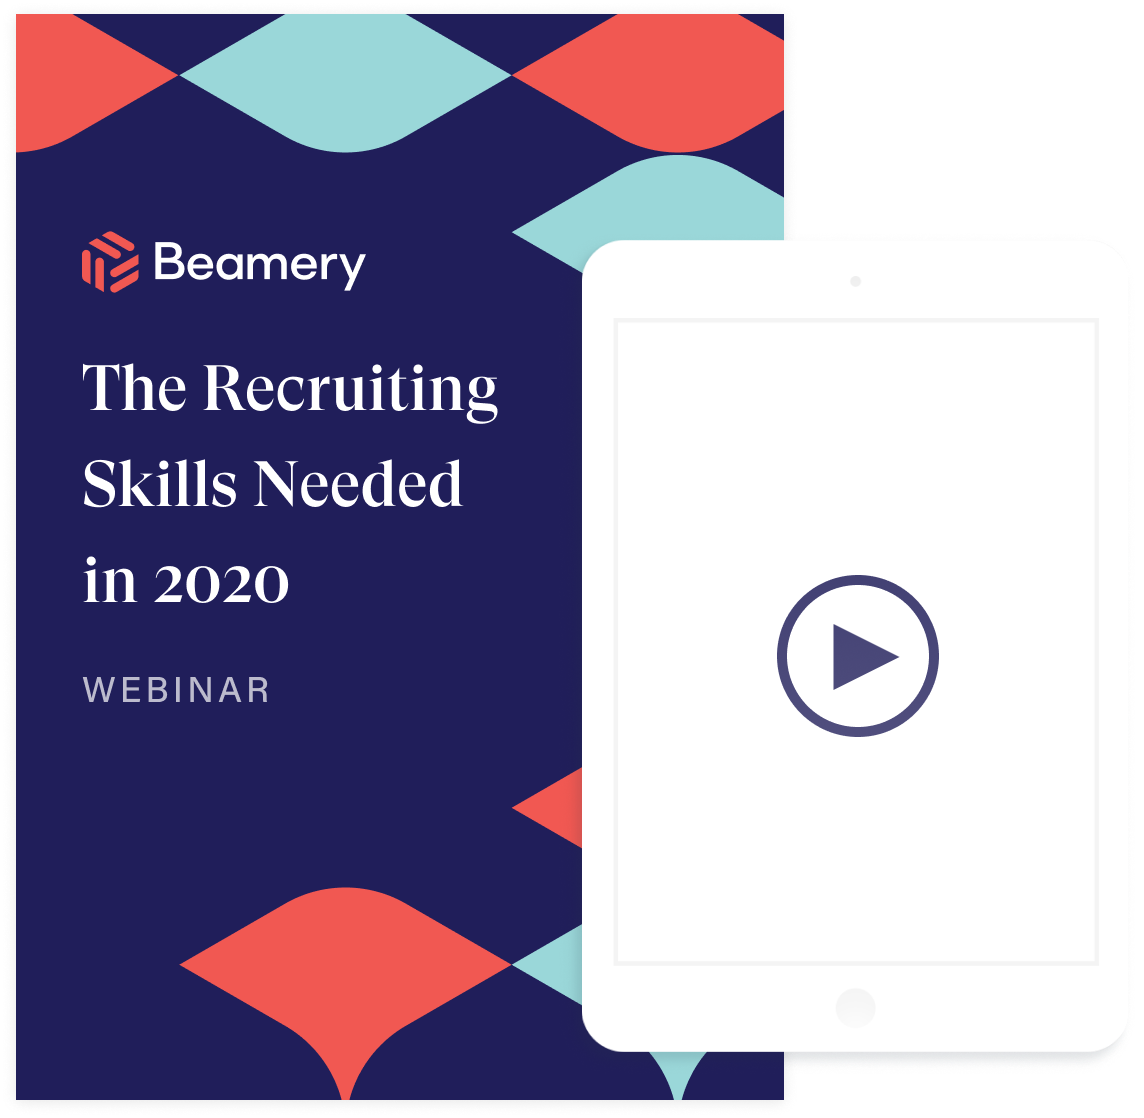 The Recruiting Skills Needed in 2020